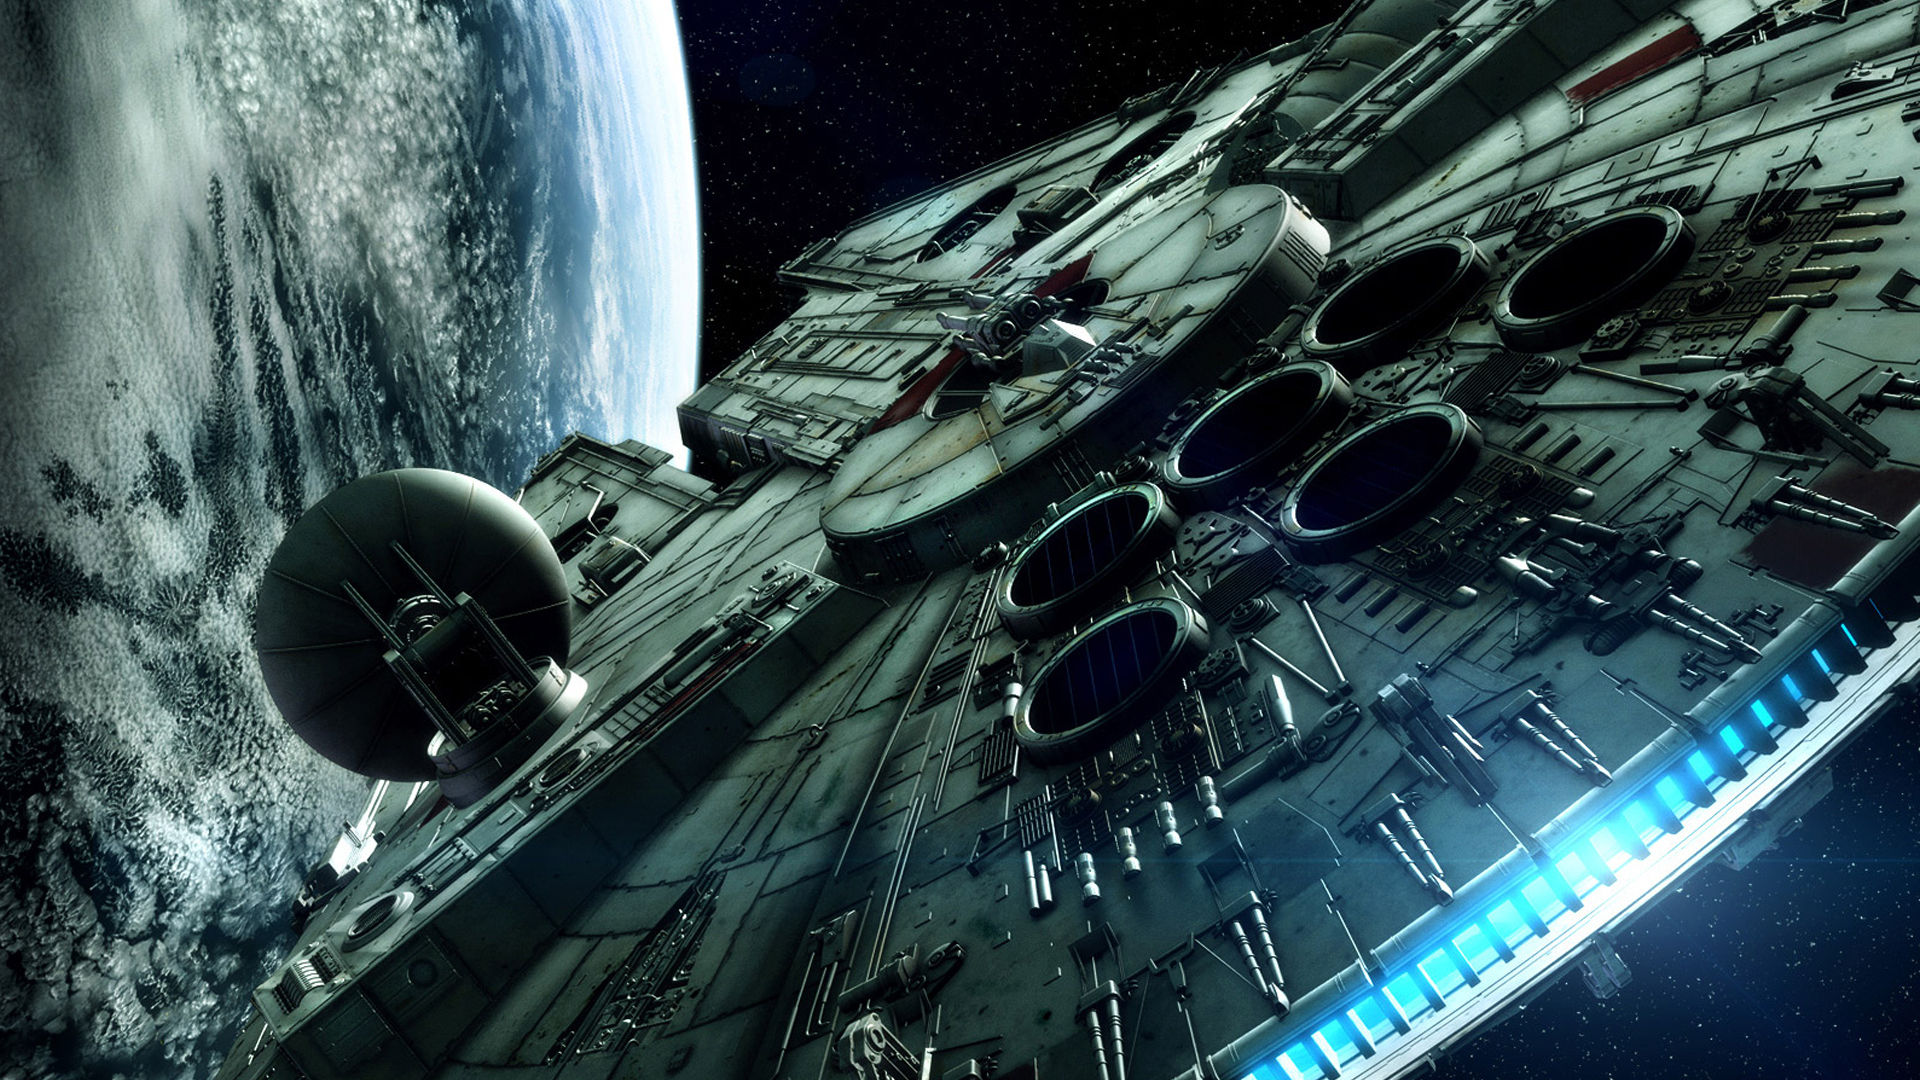 war movie free download fbulous hd widescreen wallpapers of star wars 1920x1080